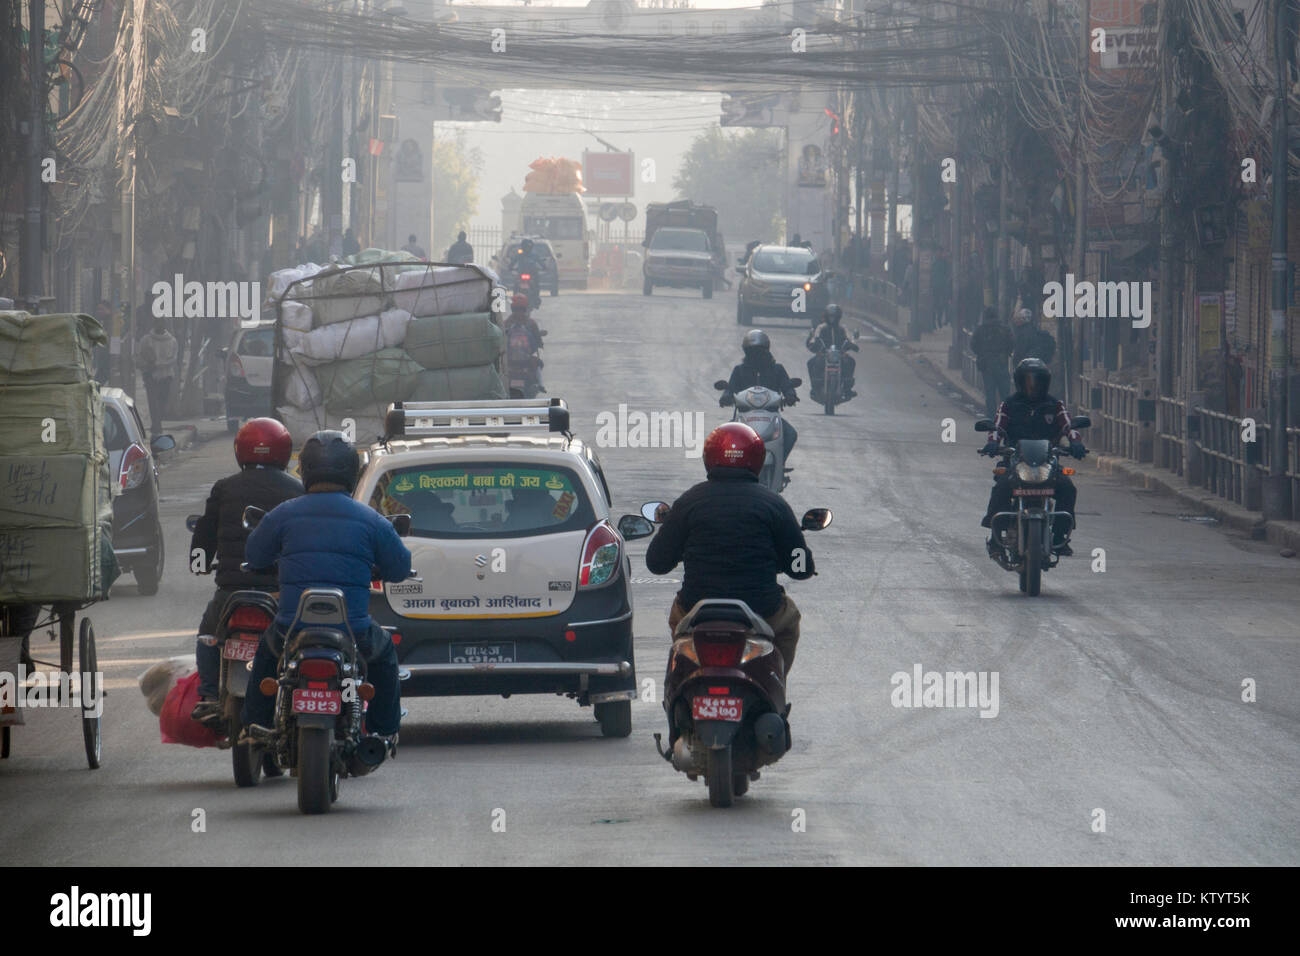 Motorcycles and car traffic in street of Kathmandu, Nepal - Stock Image